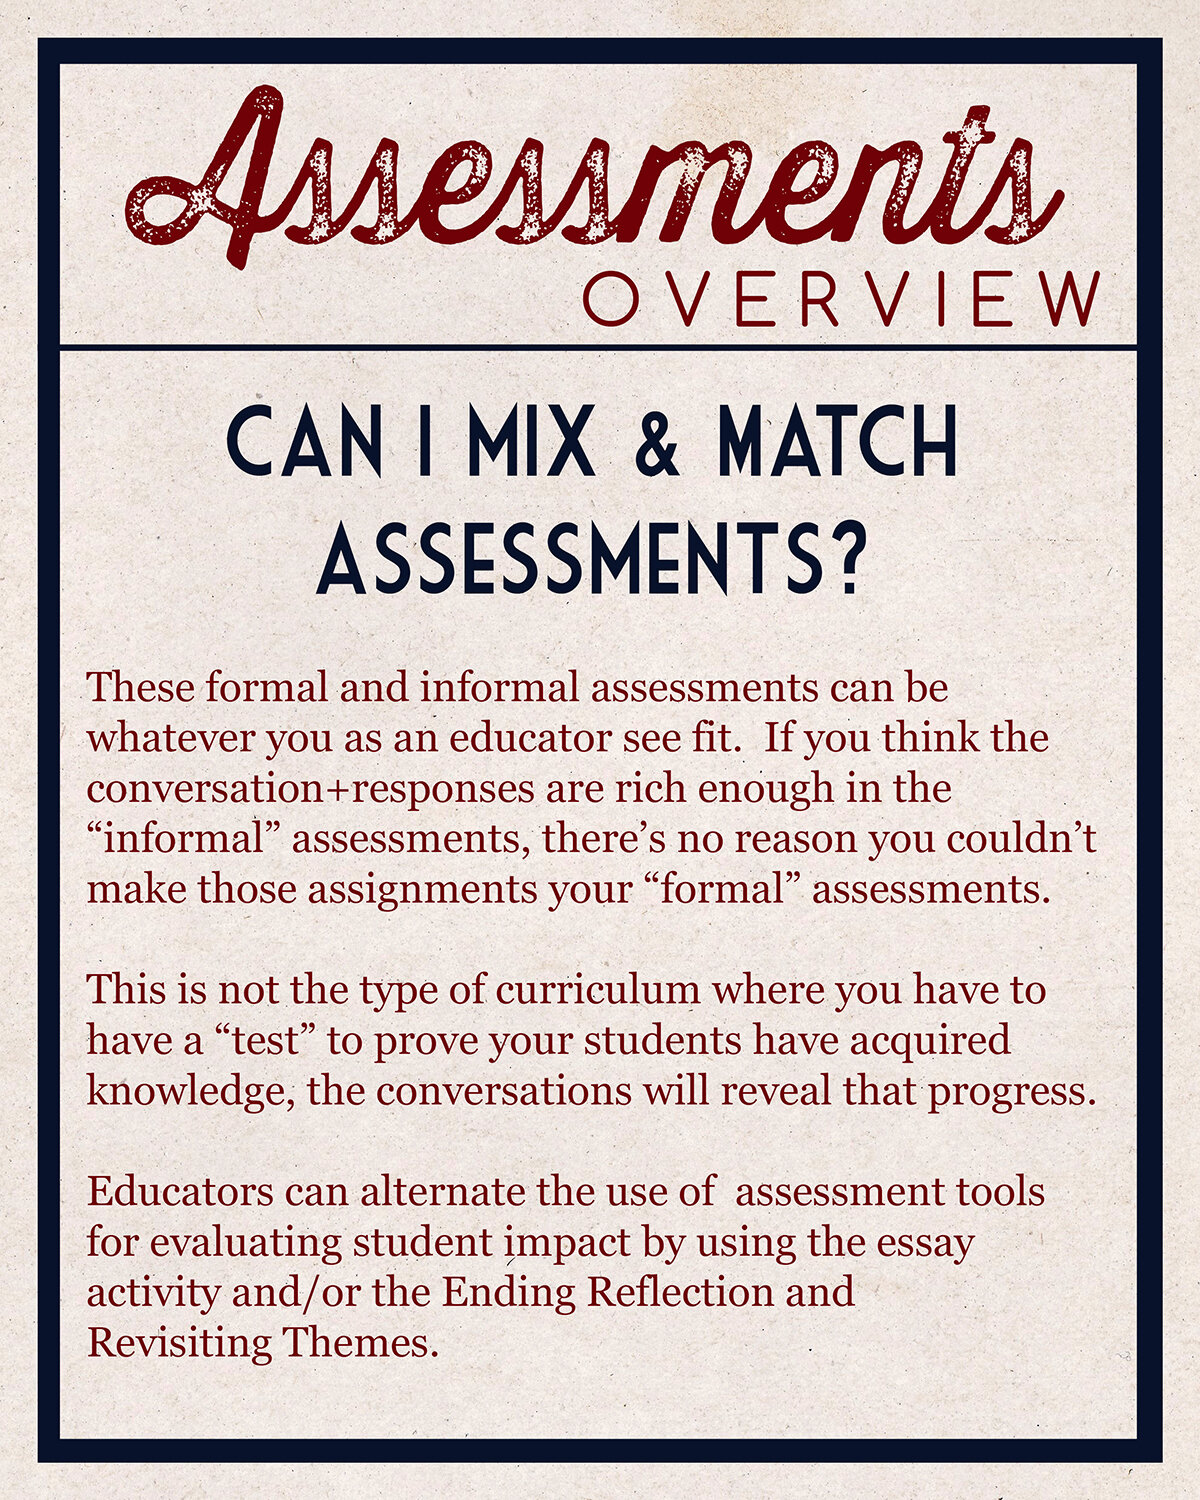 Assessments Overview.jpg